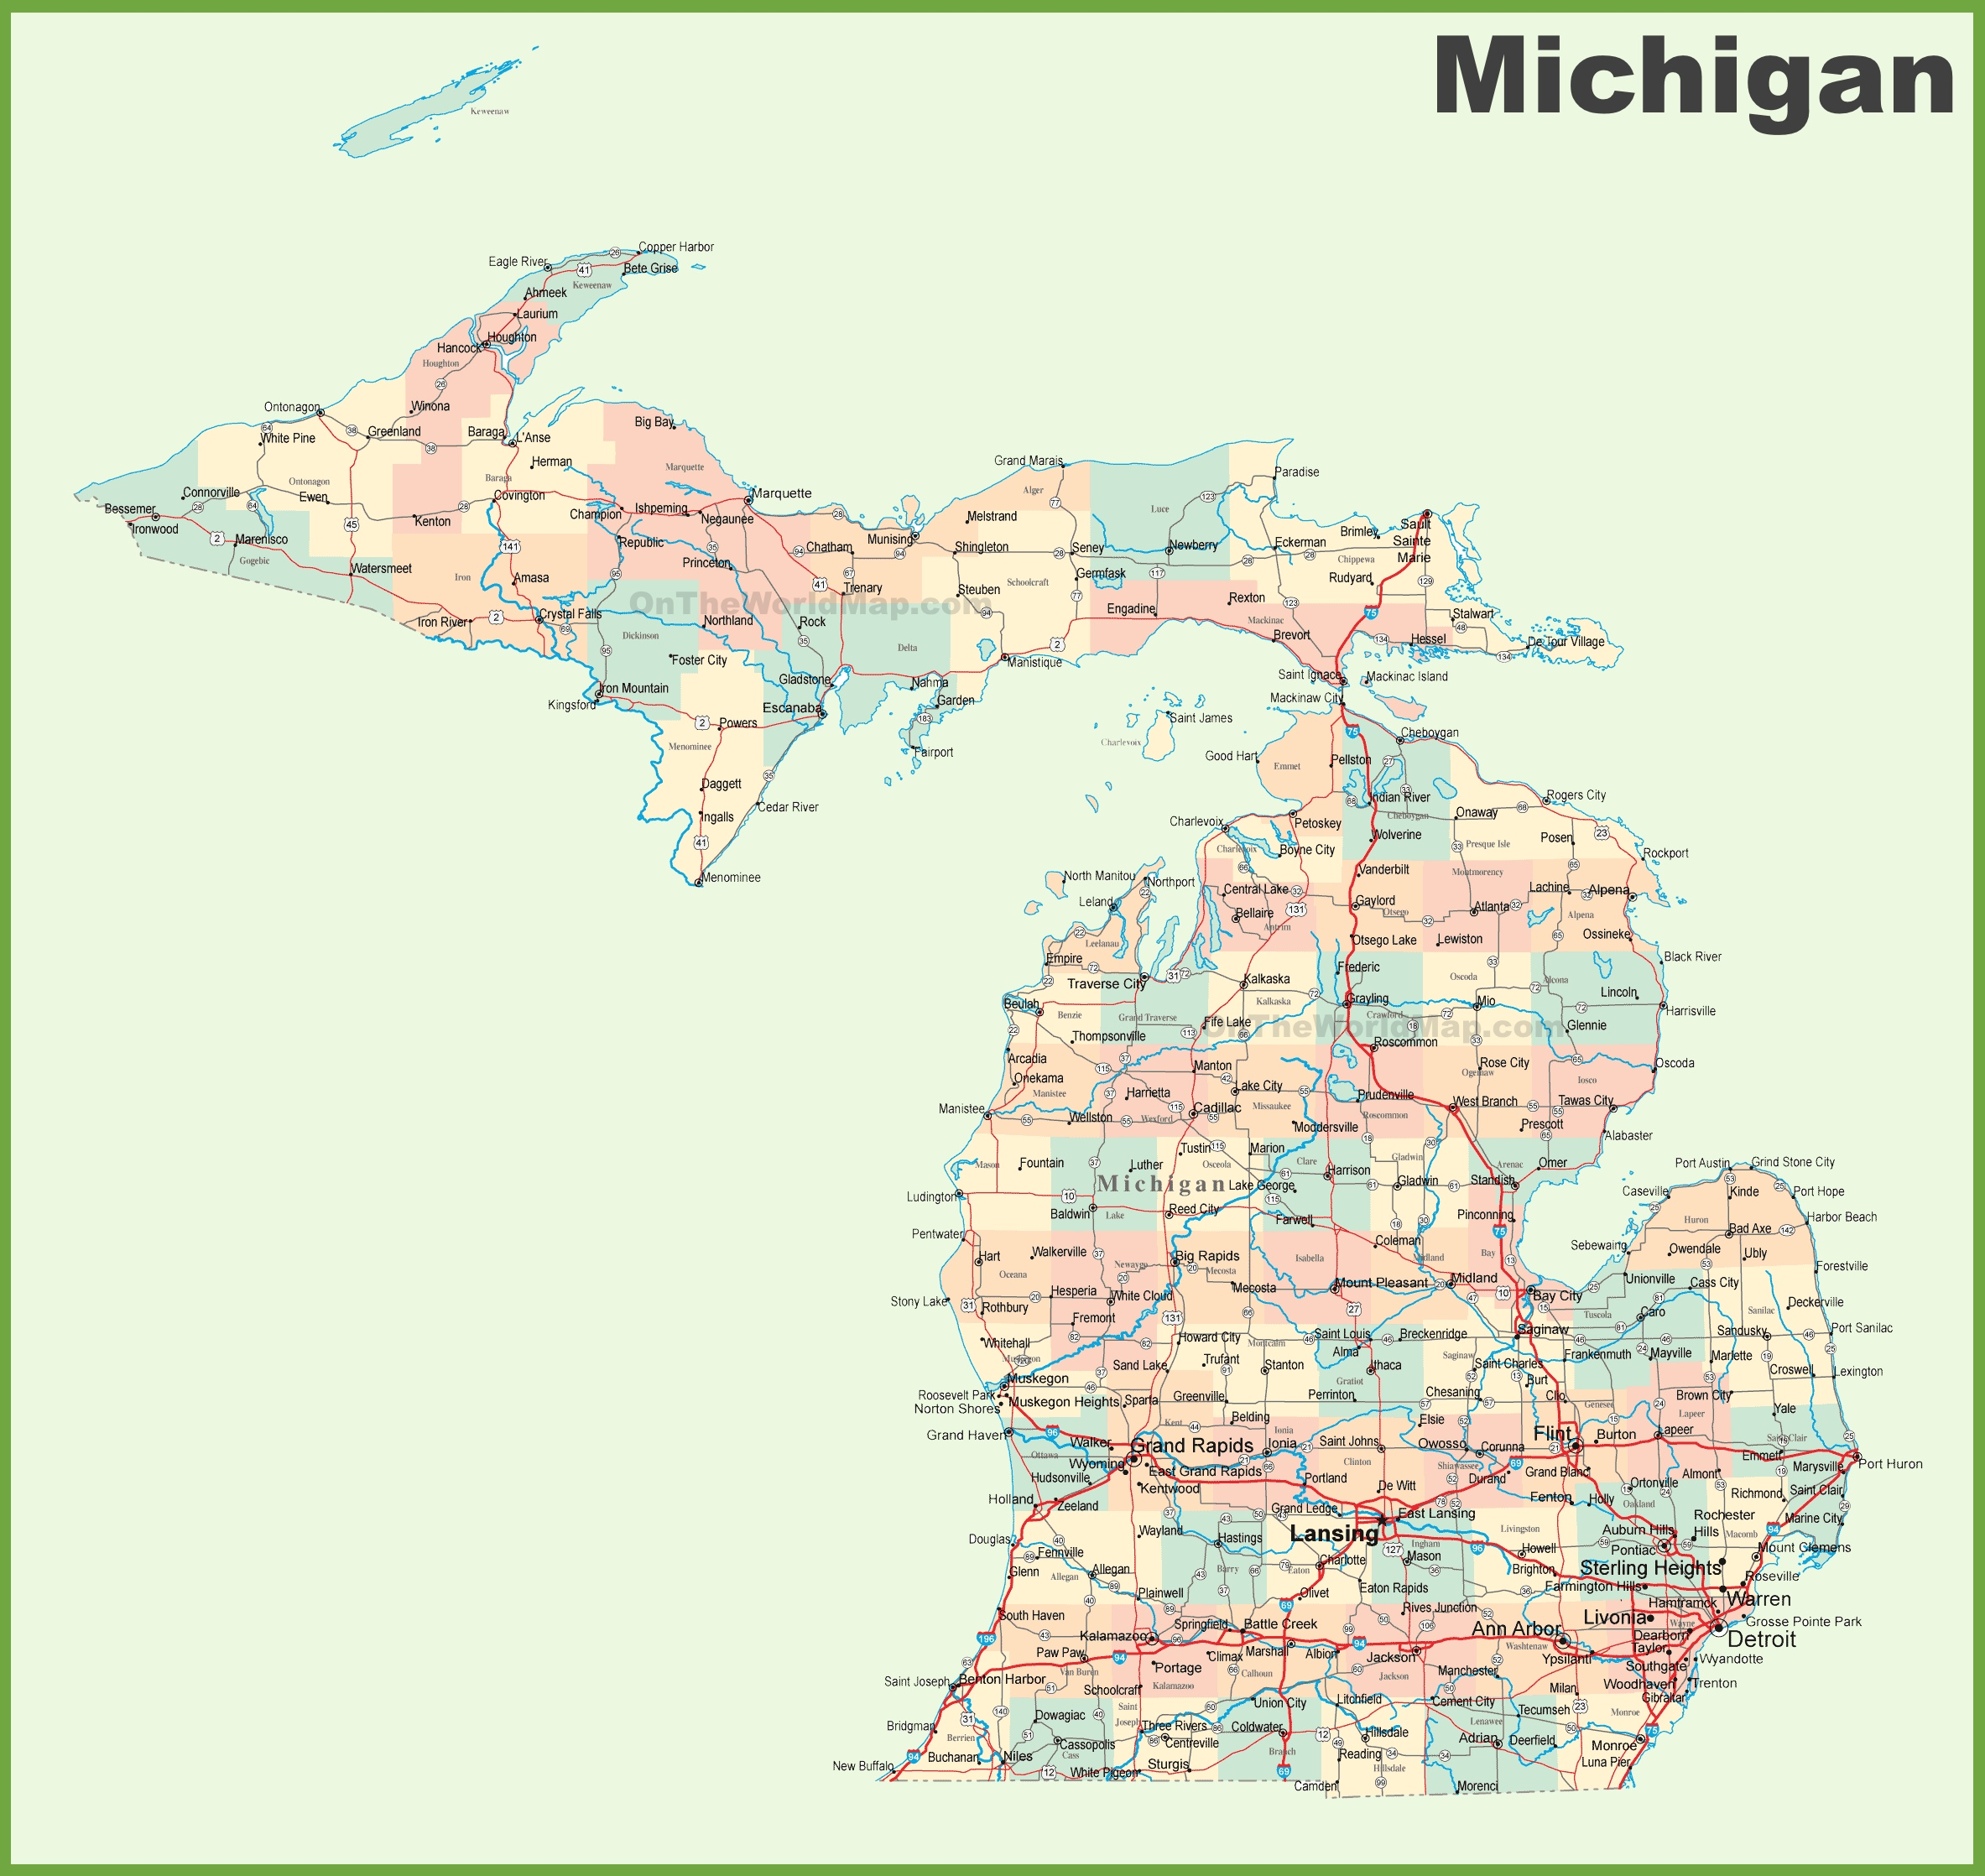 Road map of Michigan with cities